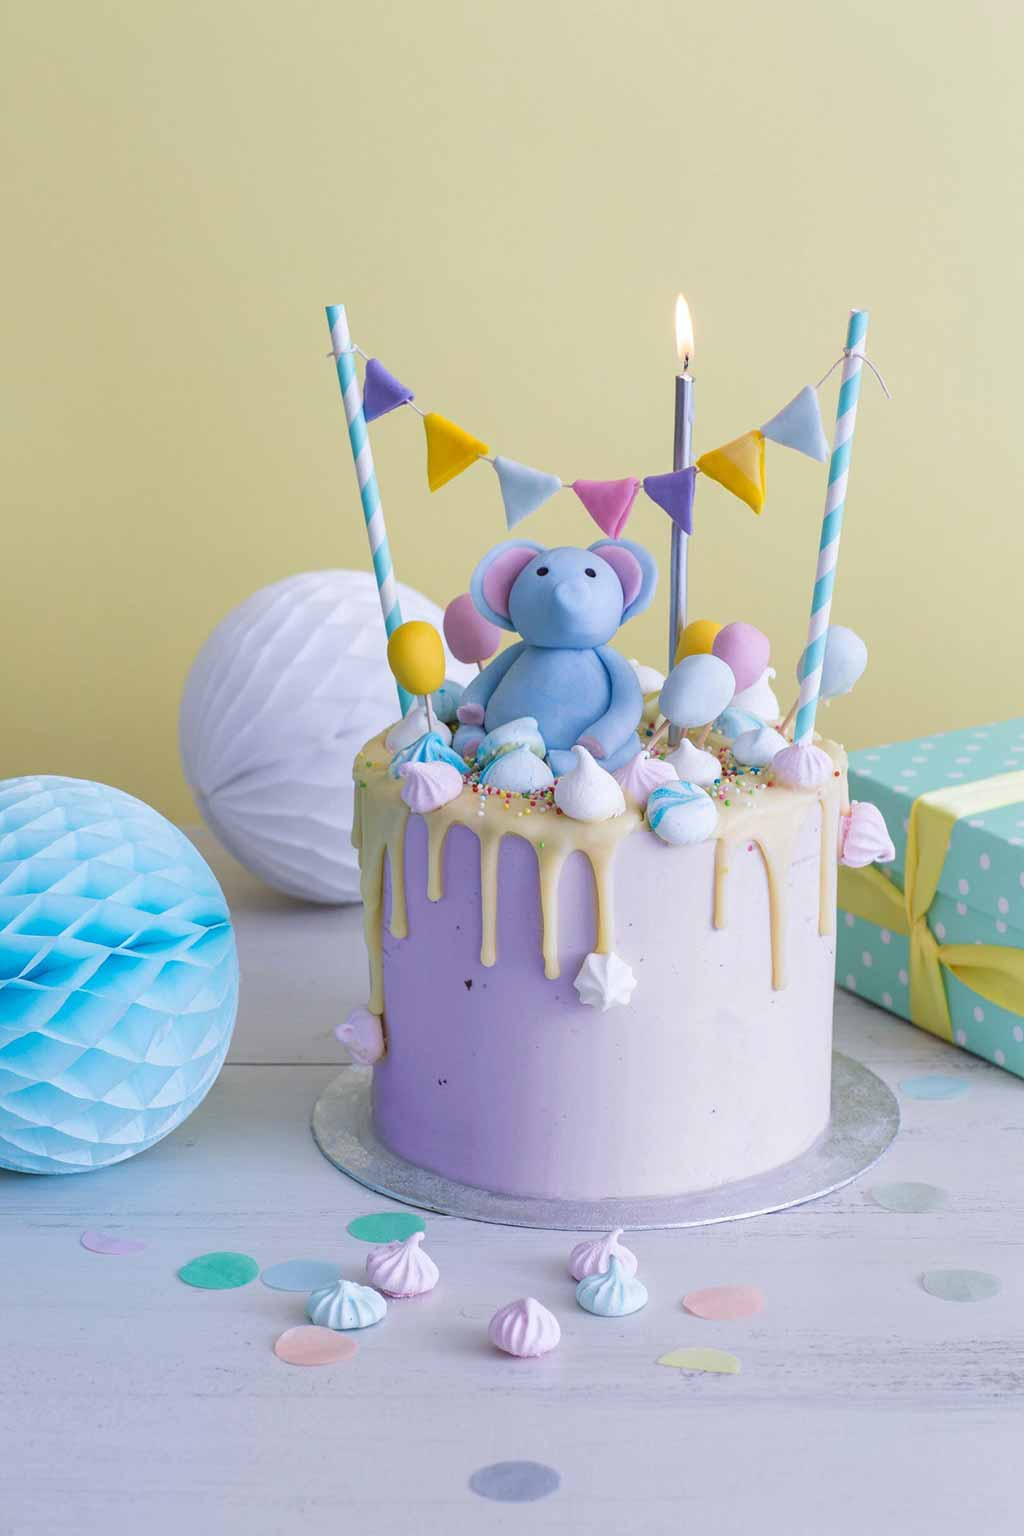 10 Fun Facts About Birthday Cakes